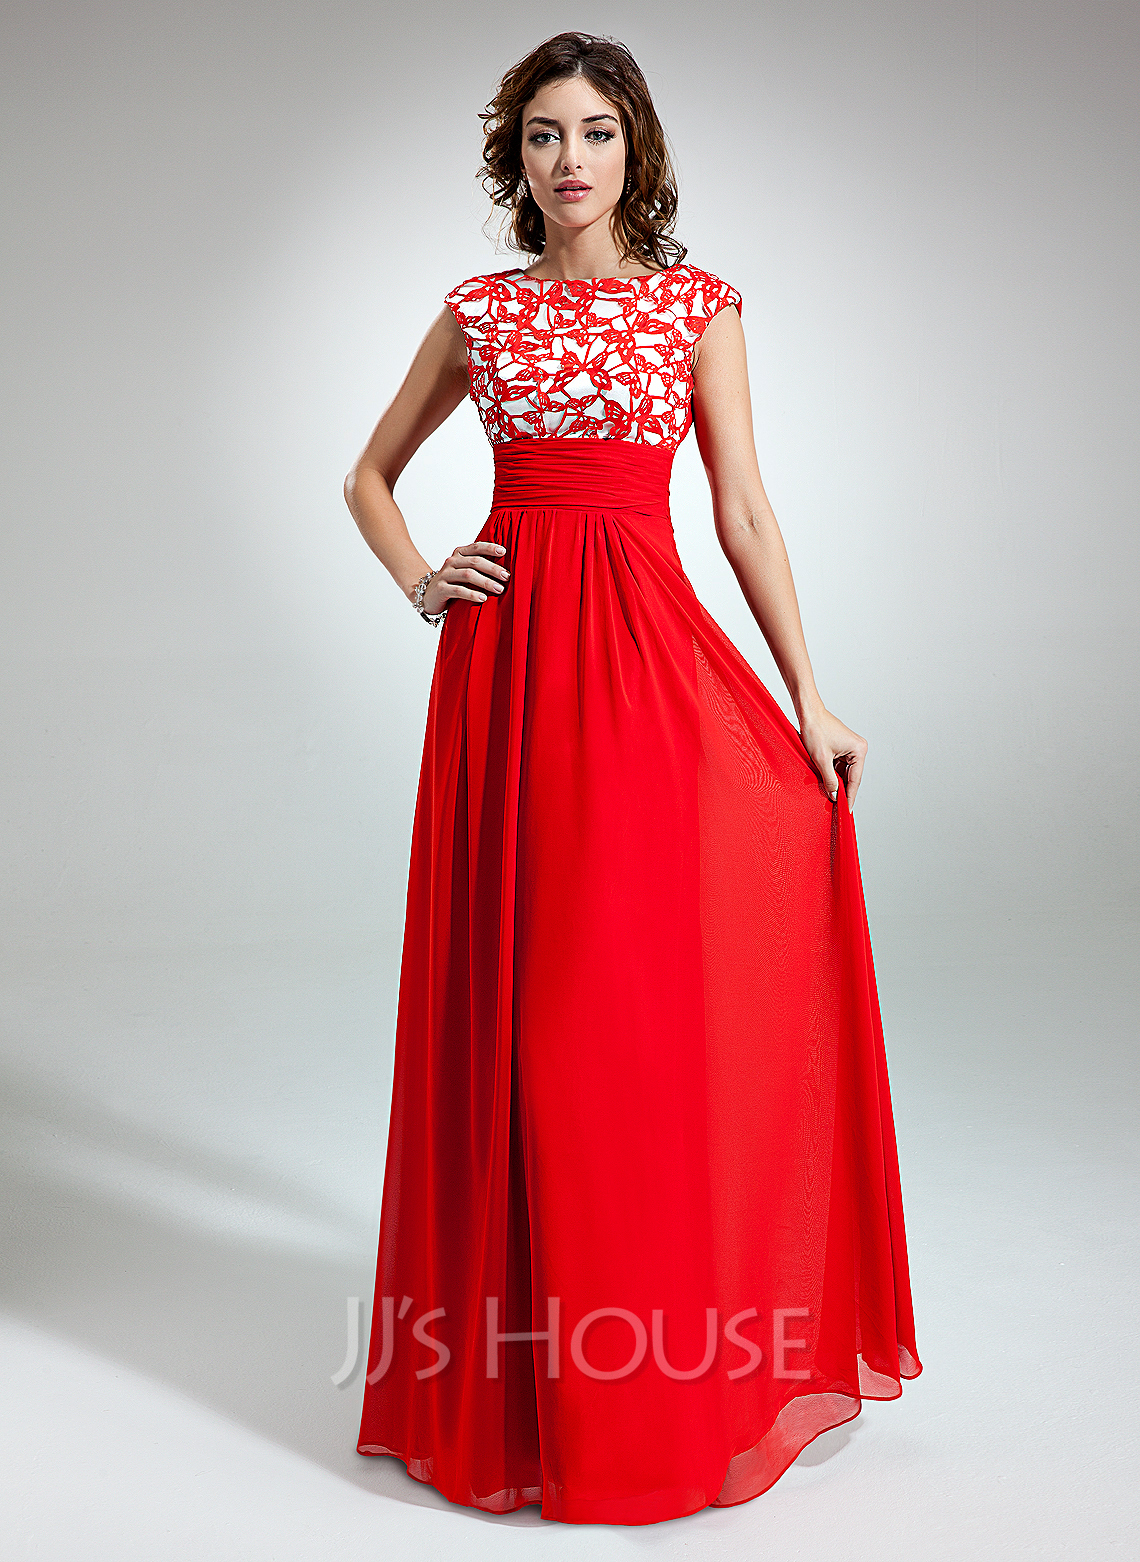 Length chiffon holiday dress with ruffle lace 020032261 jjshouse